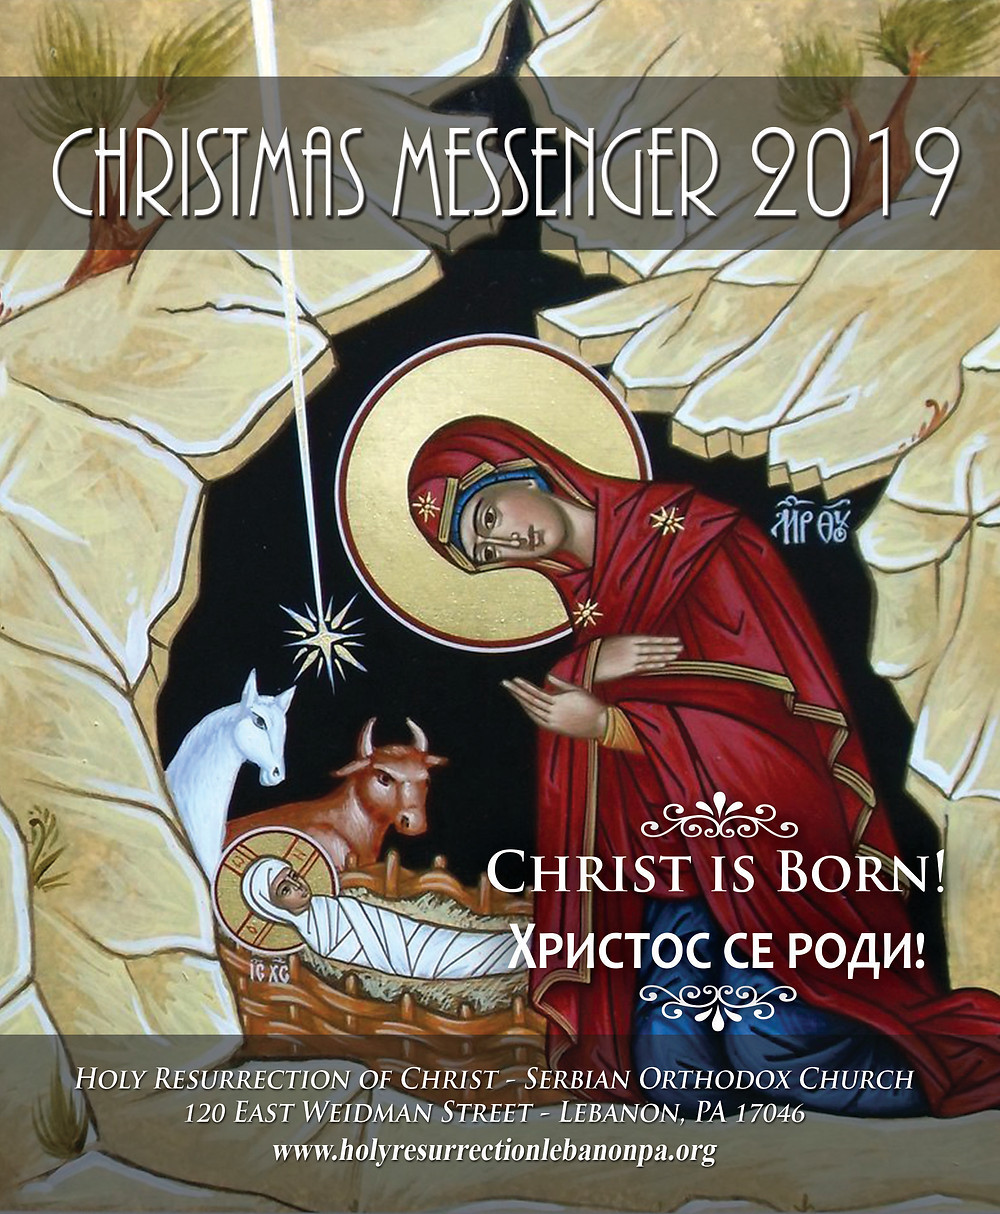 Christmas Messenger COVER 2019 with layers